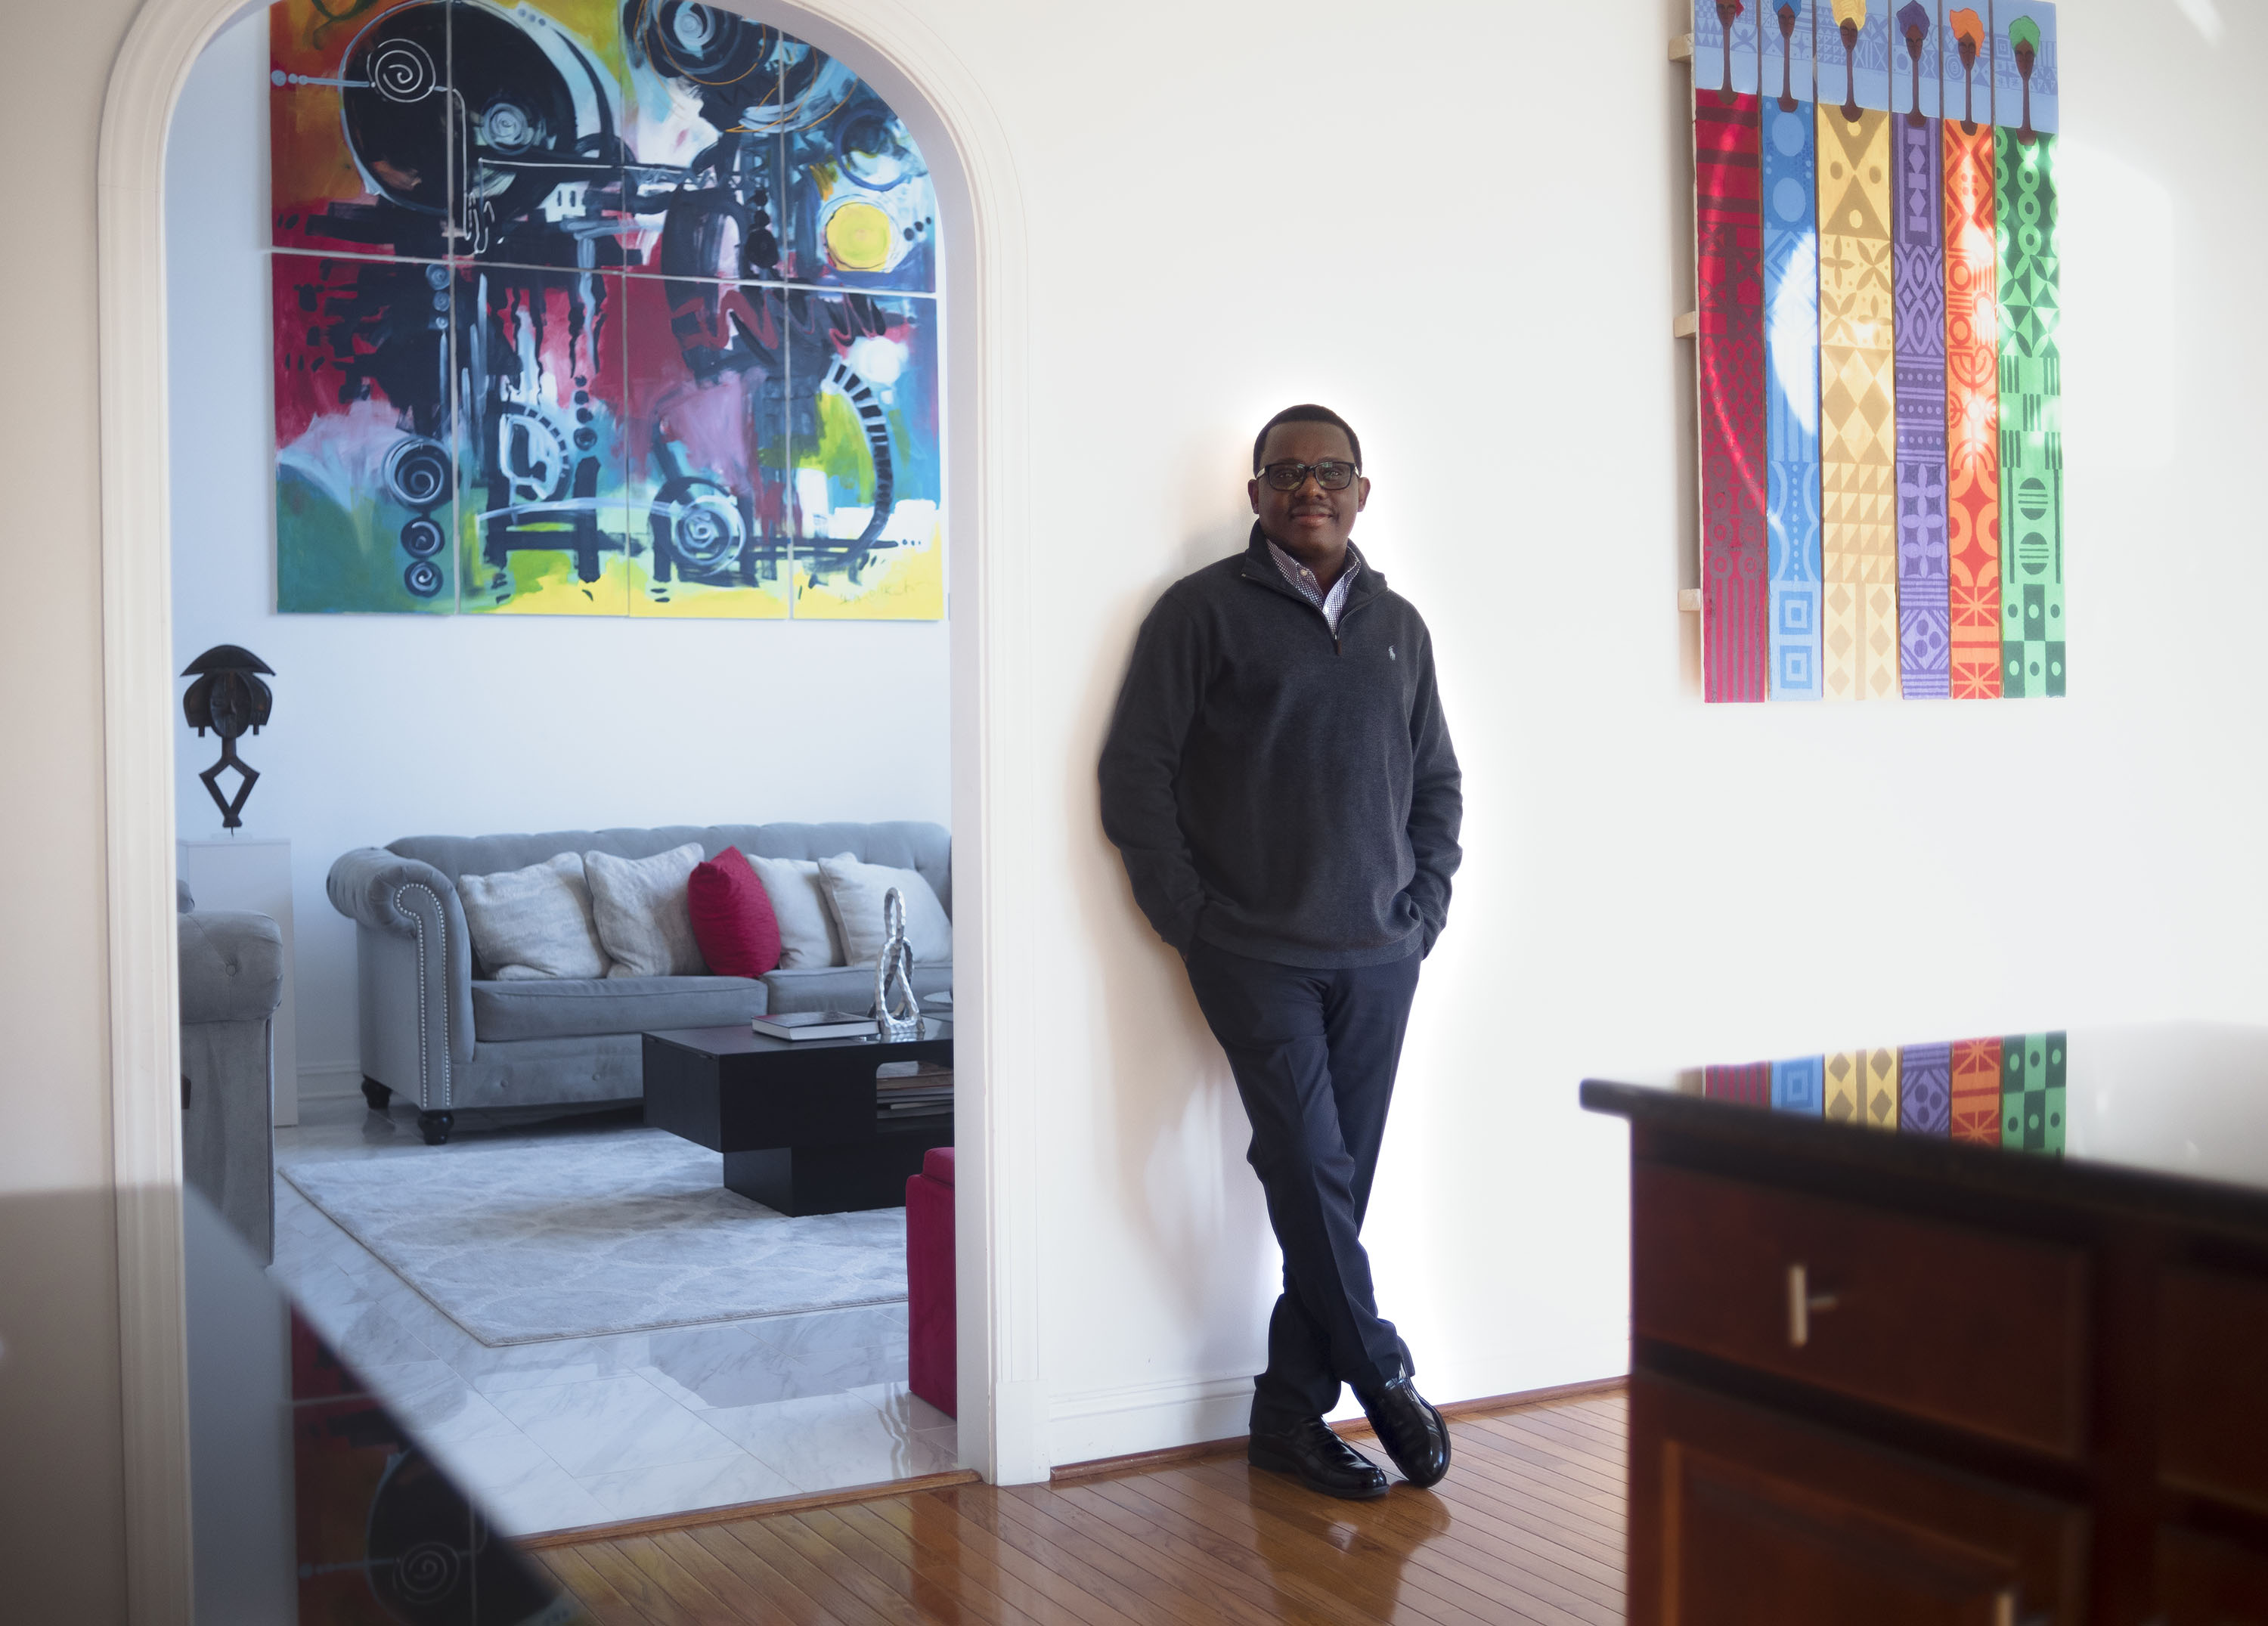 """Olusanya Ojikutu with, left, a Kota Reliquary Guardian Figure, center, detail of one of his own paintings, """"Labyrinth of Imagination"""" (2015), and right, a painting on a wood pallet by Dapo Ojoade. Photo: Emma Howells. Courtesy of Olusanya Ojikutu."""